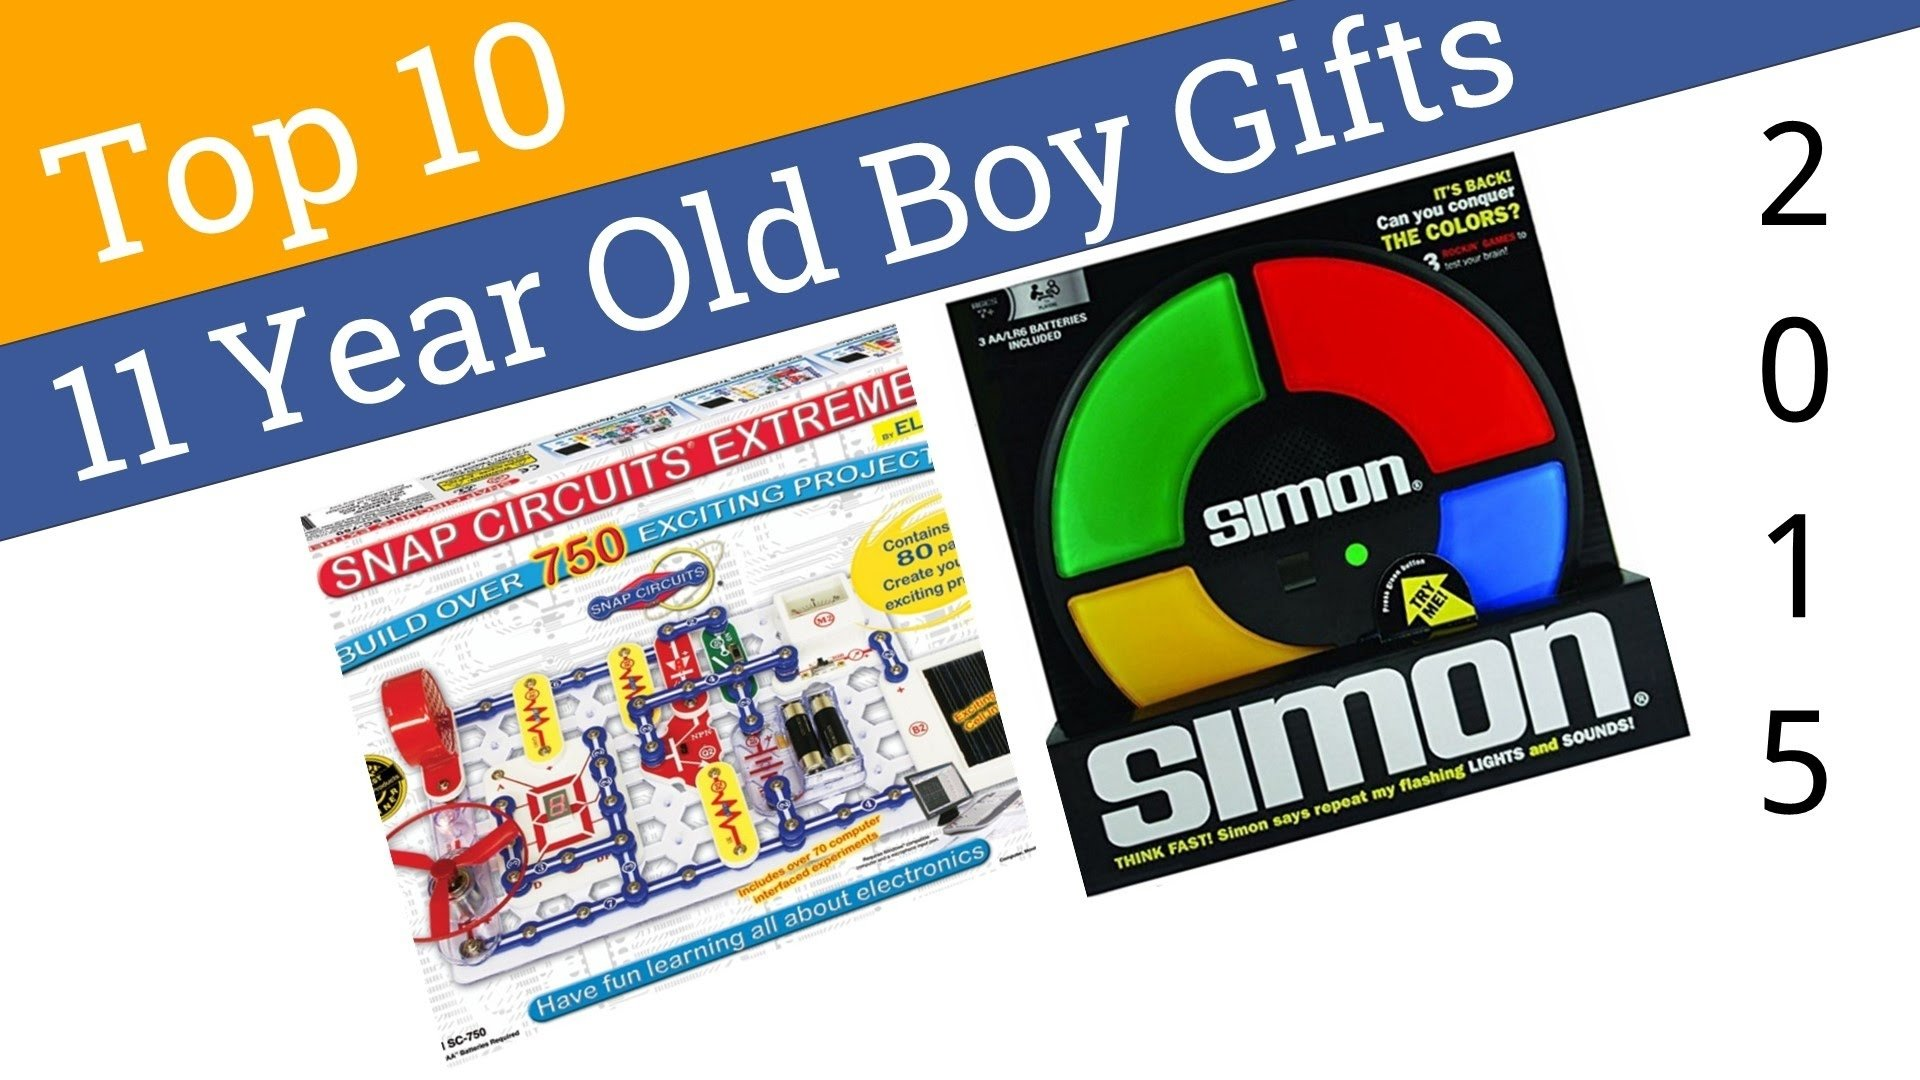 10 Amazing Christmas Gift Ideas For 10 Year Old Boy 10 best 11 year old boy gifts 2015 youtube 8 2020